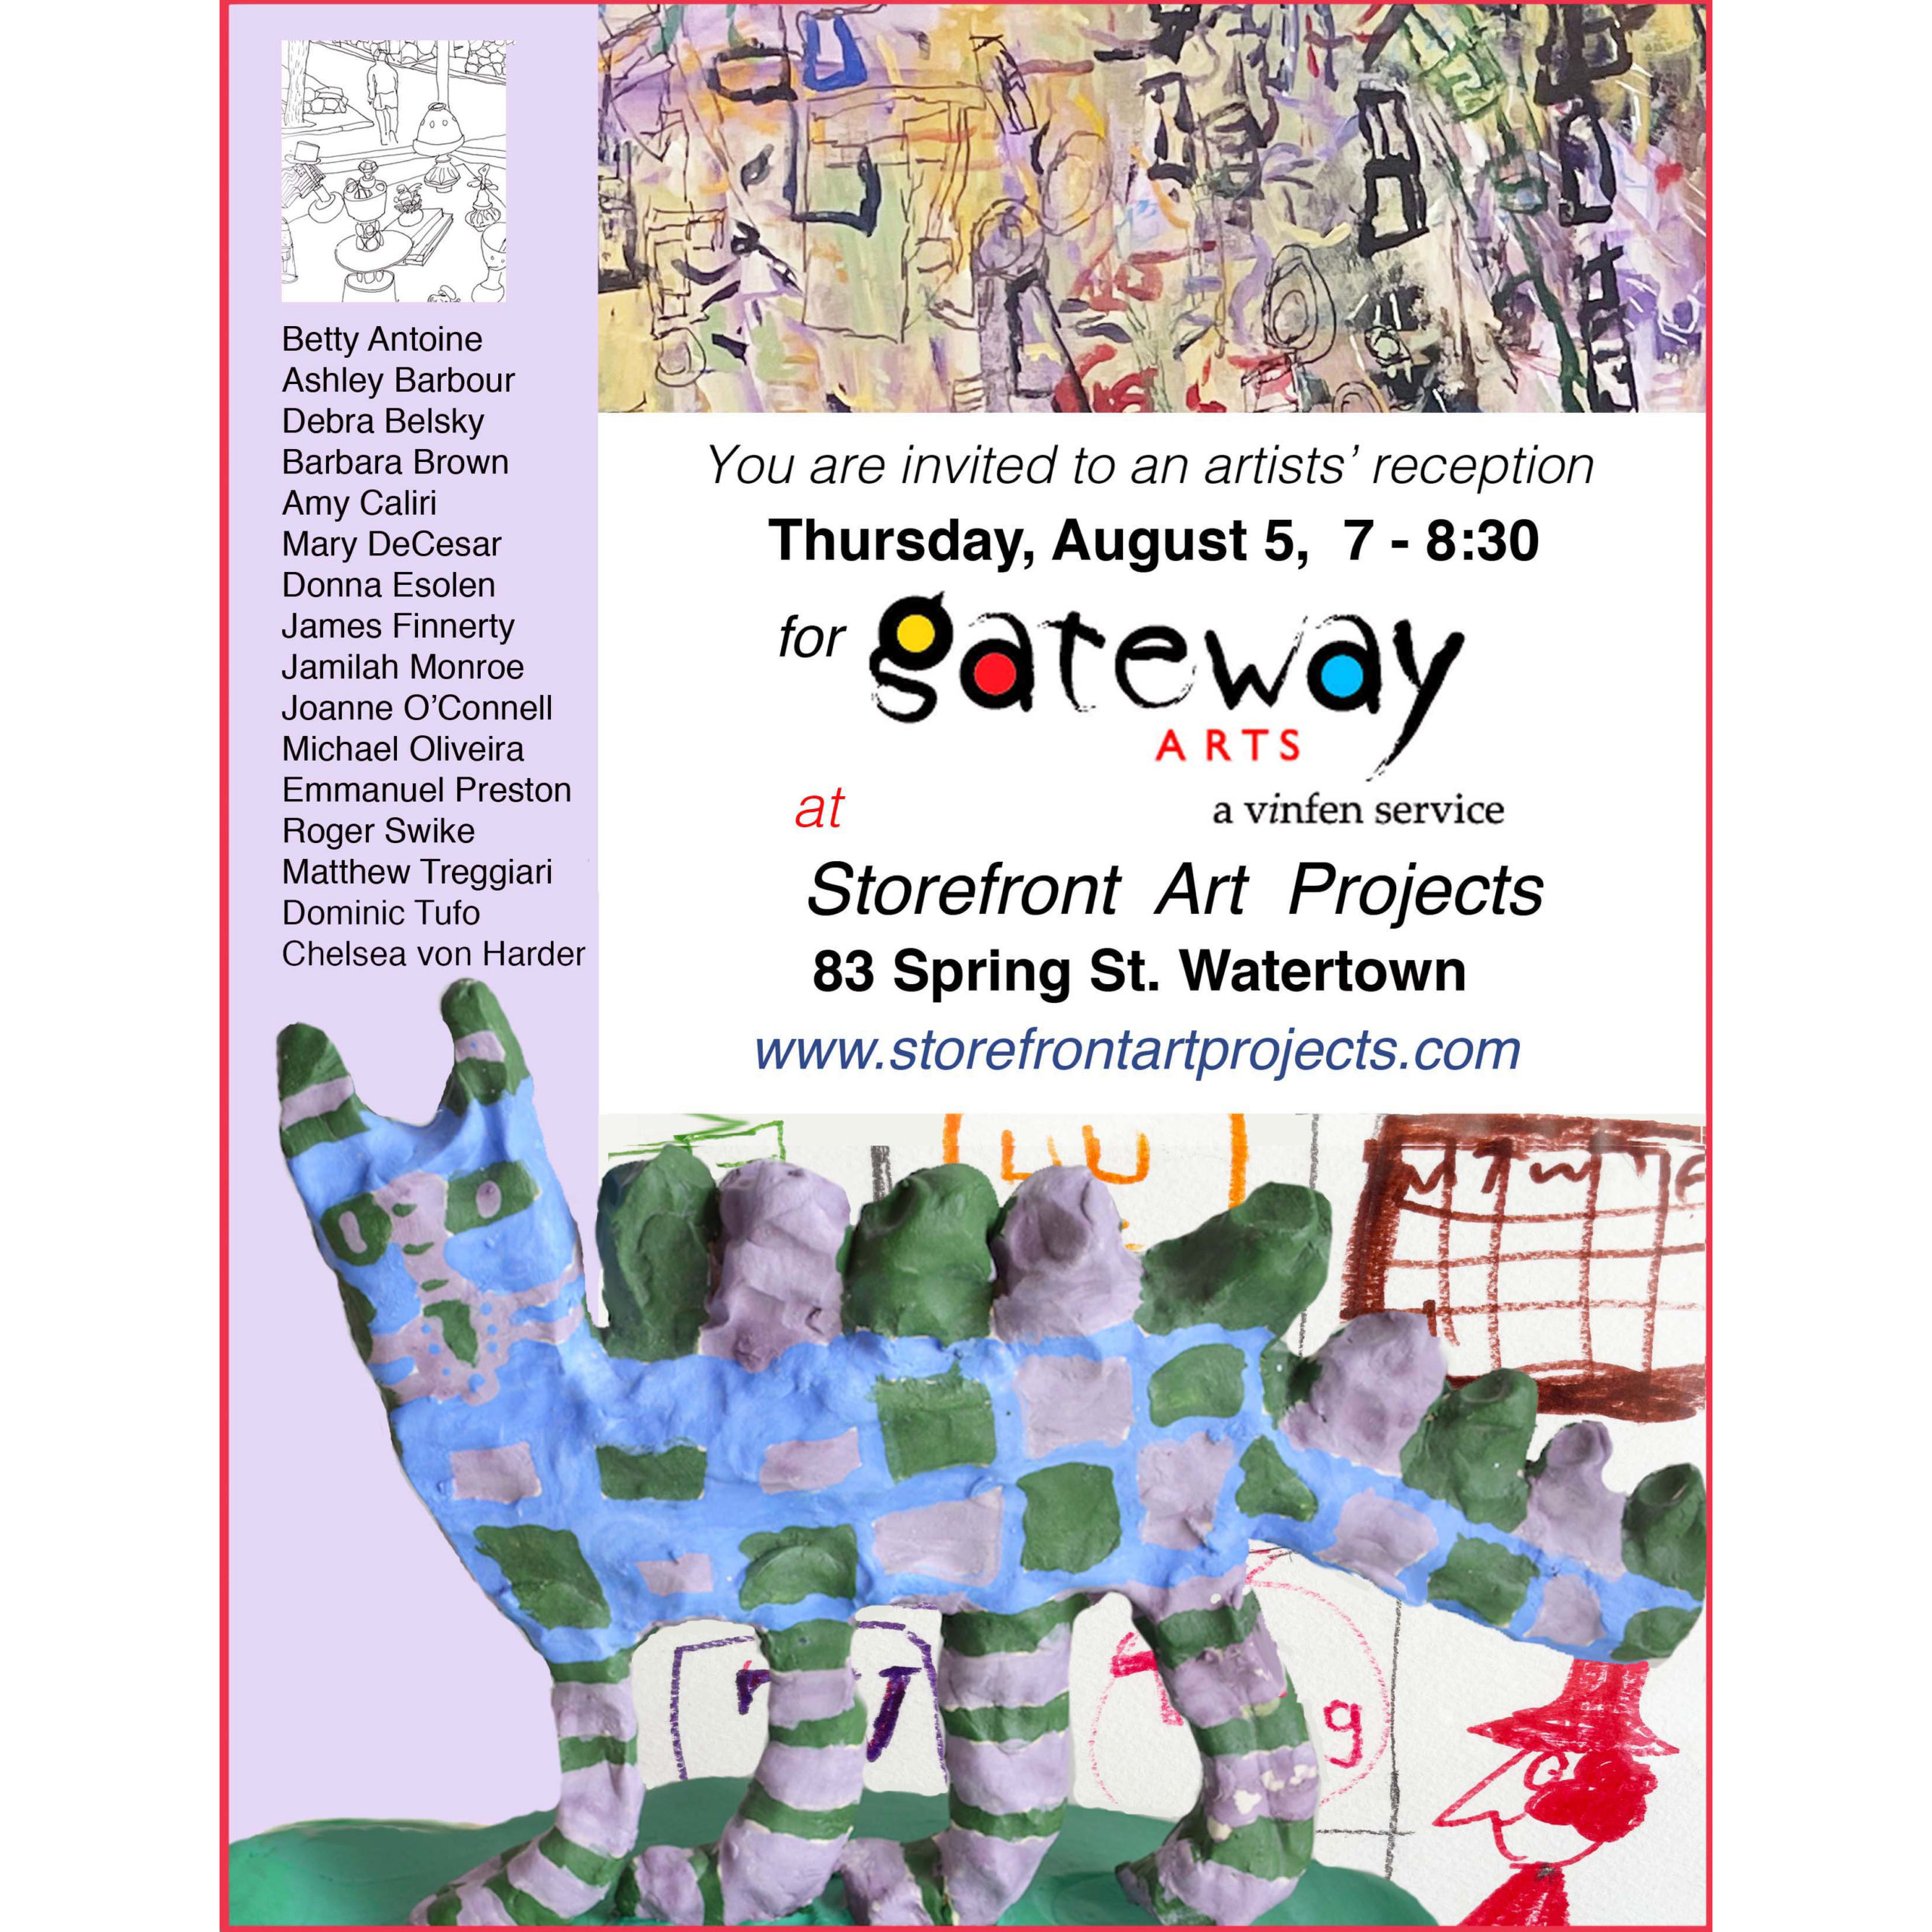 Artists' Reception for A Gateway Arts Collection at Storefront Art Projects @ Storefront Art Projects